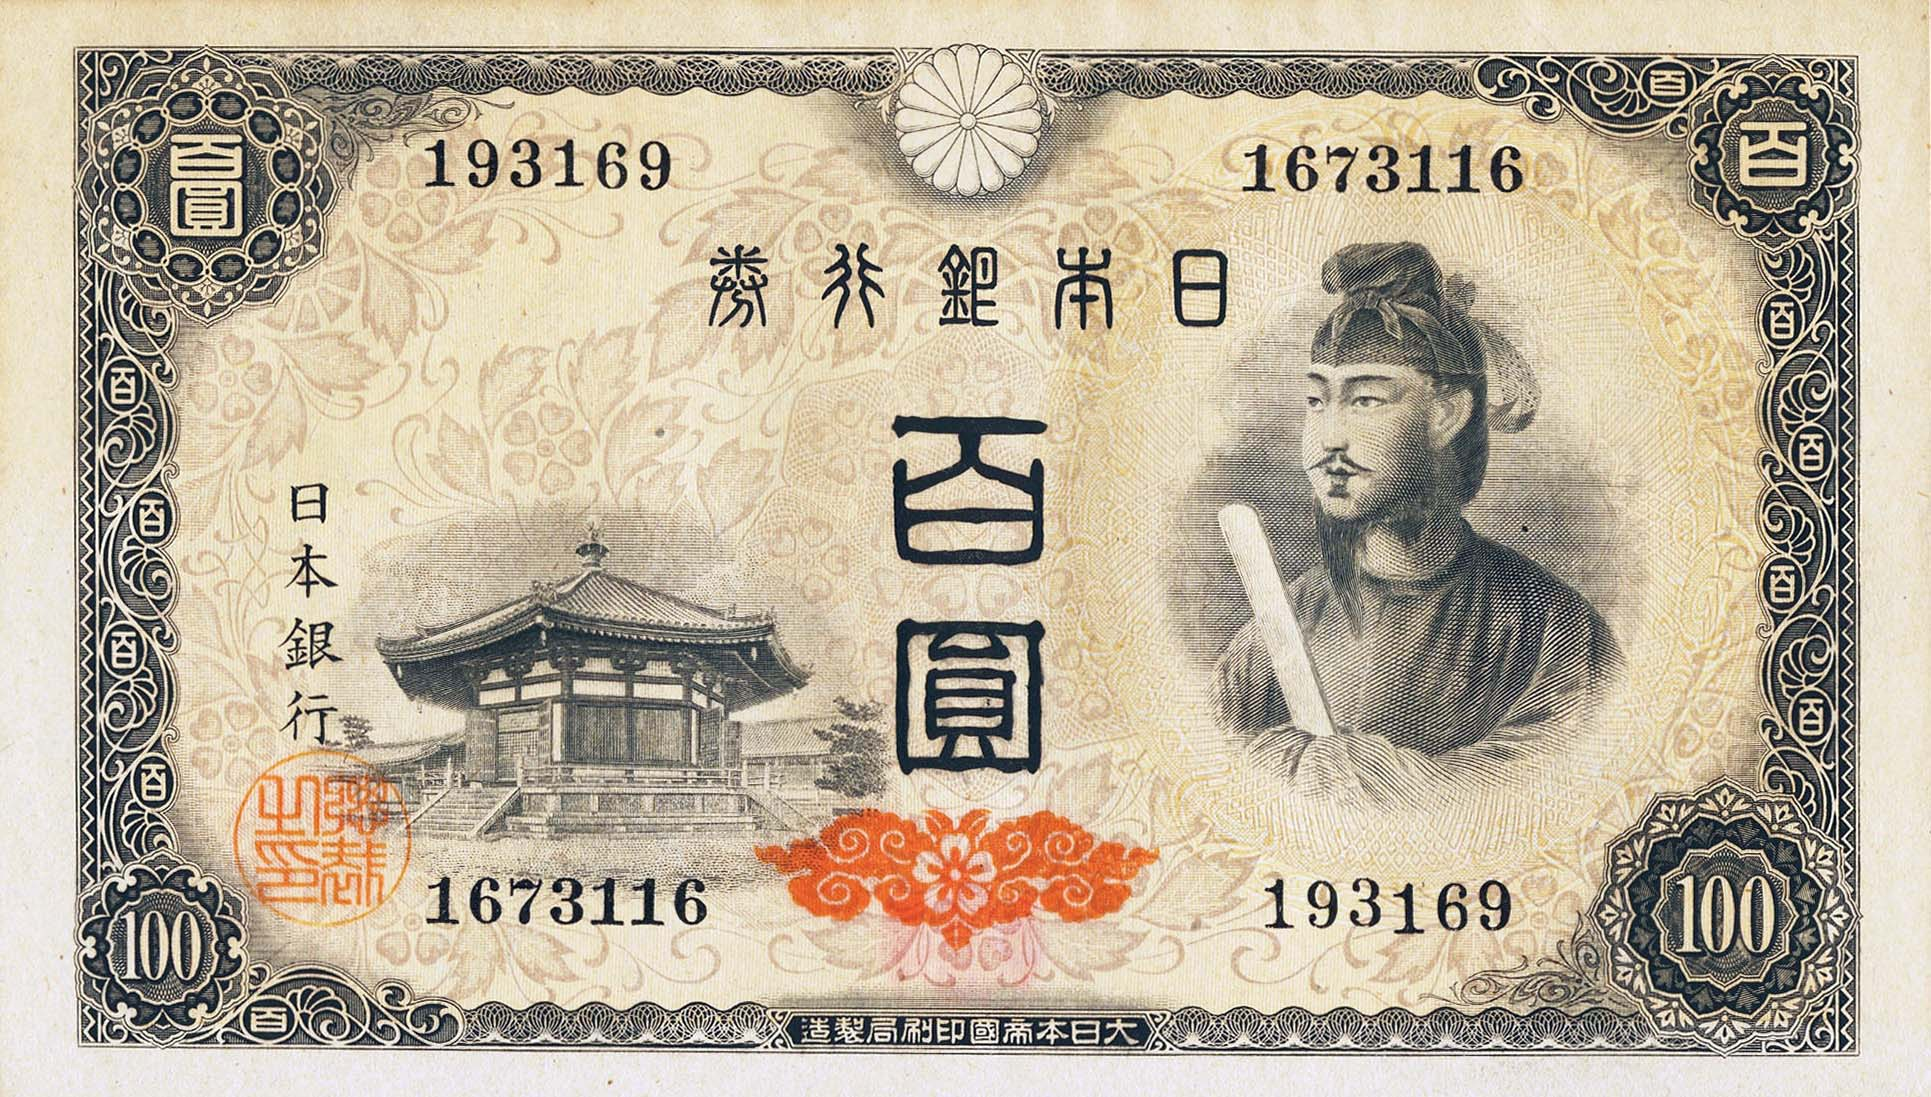 1946 BANKNOTE Japan 1 Yen Note PAPER MONEY CURRENCY BANKNOTE High Grade